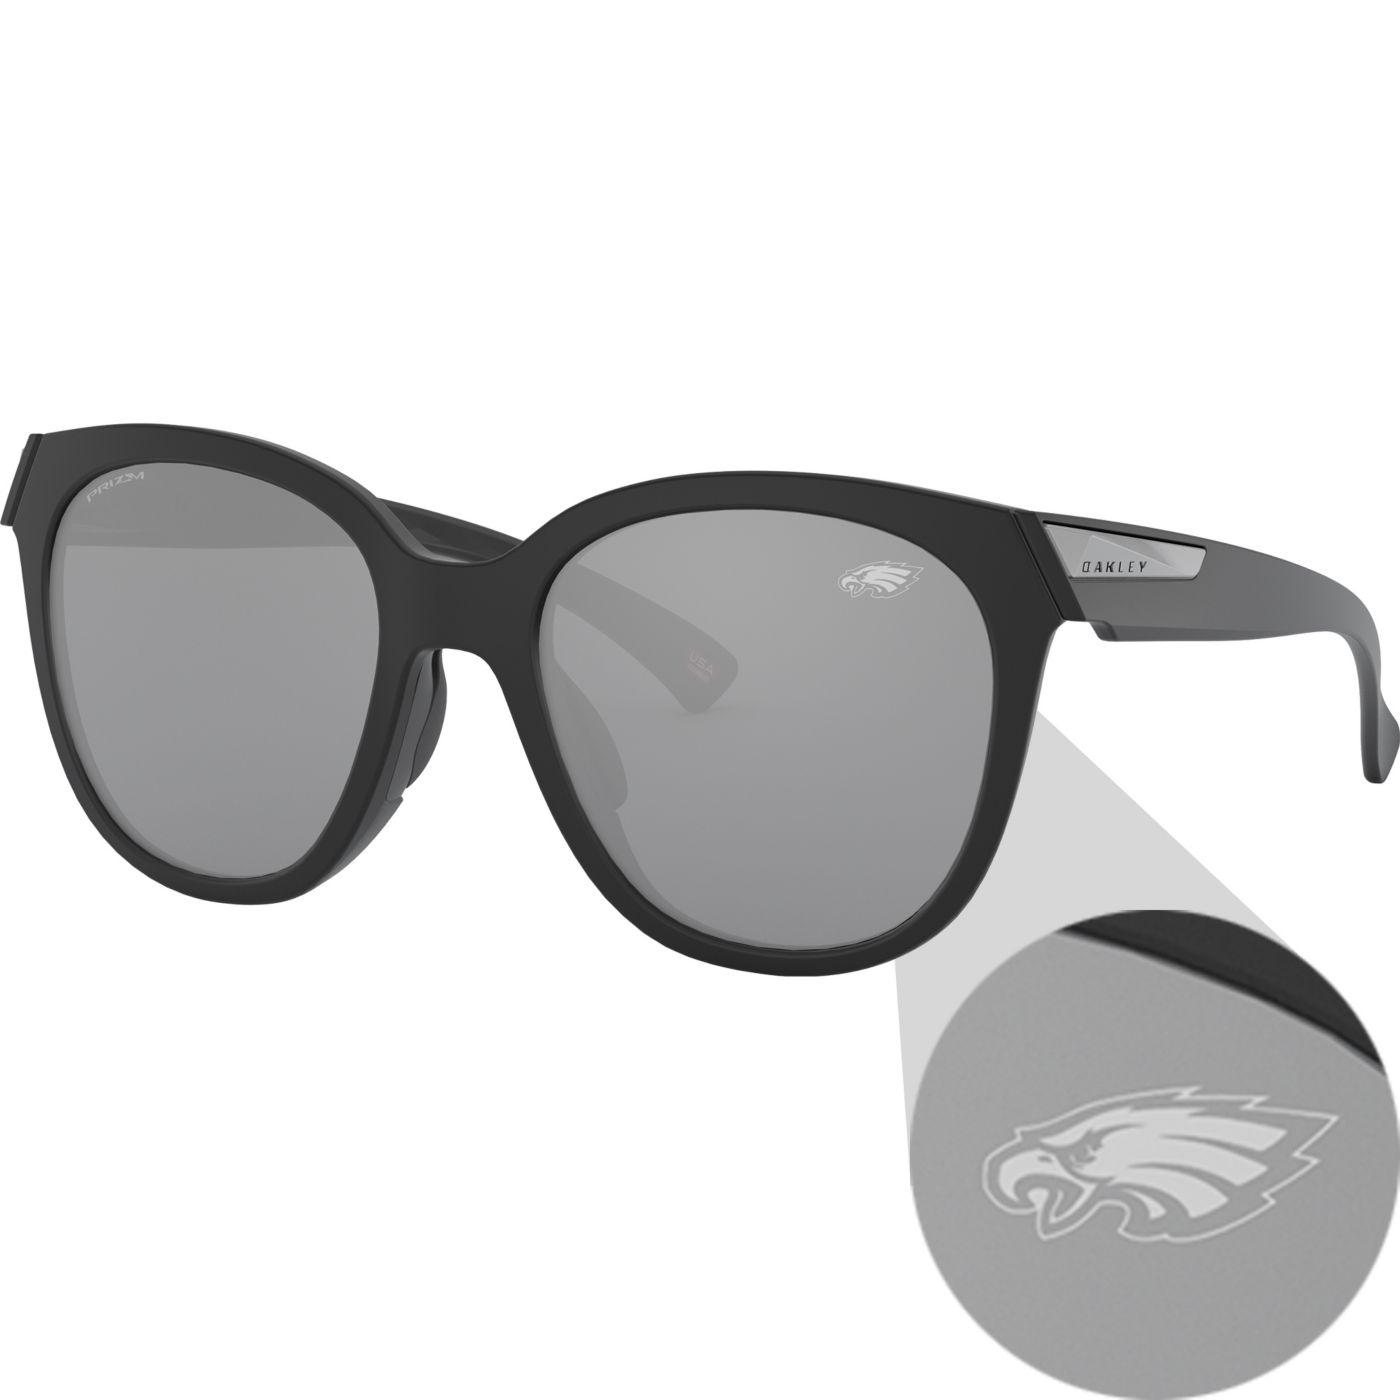 Oakley Philadelphia Eagles Women's Low Key Sunglasses